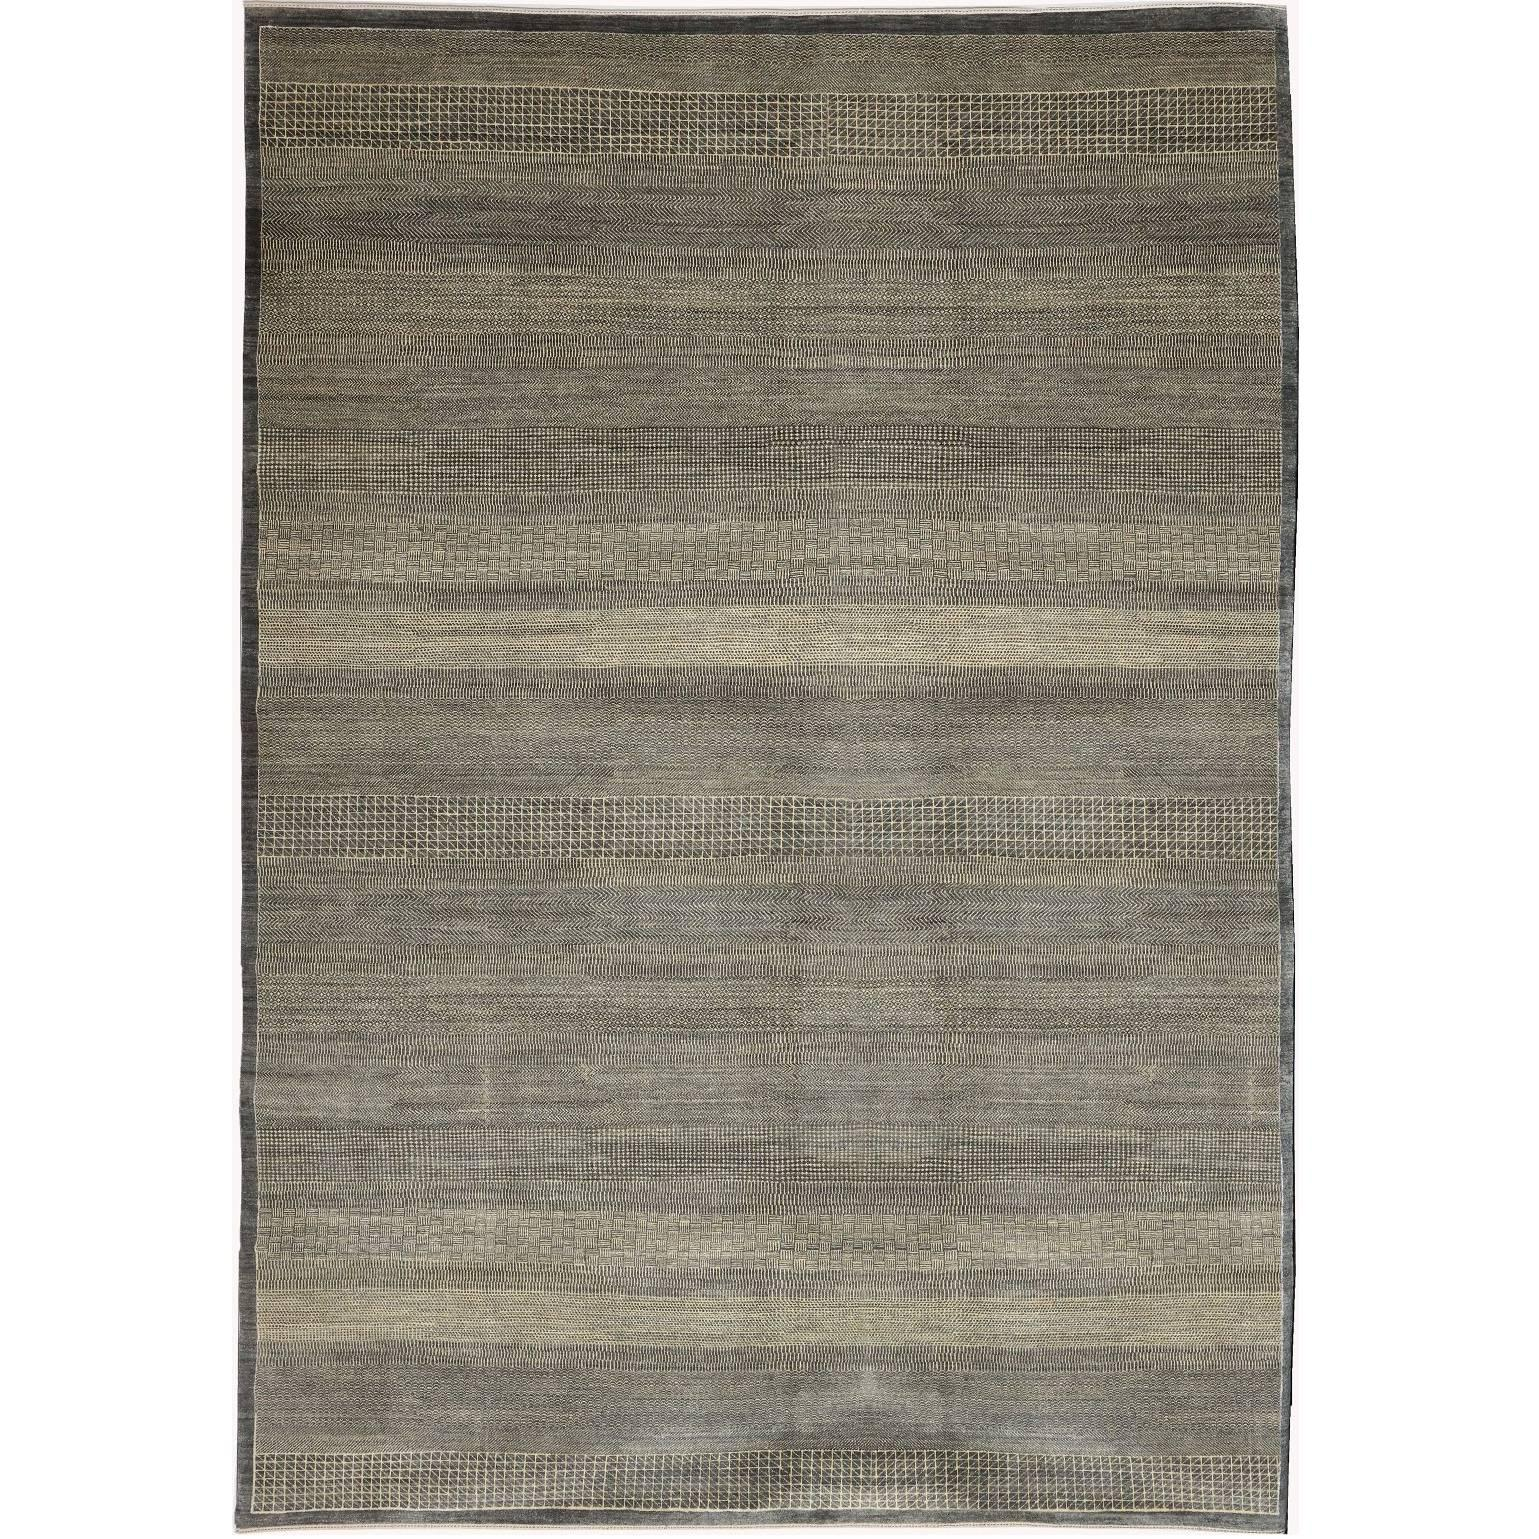 Orley Shabahang Signature Carpet in Handspun Wool and Organic Vegetable Dyes